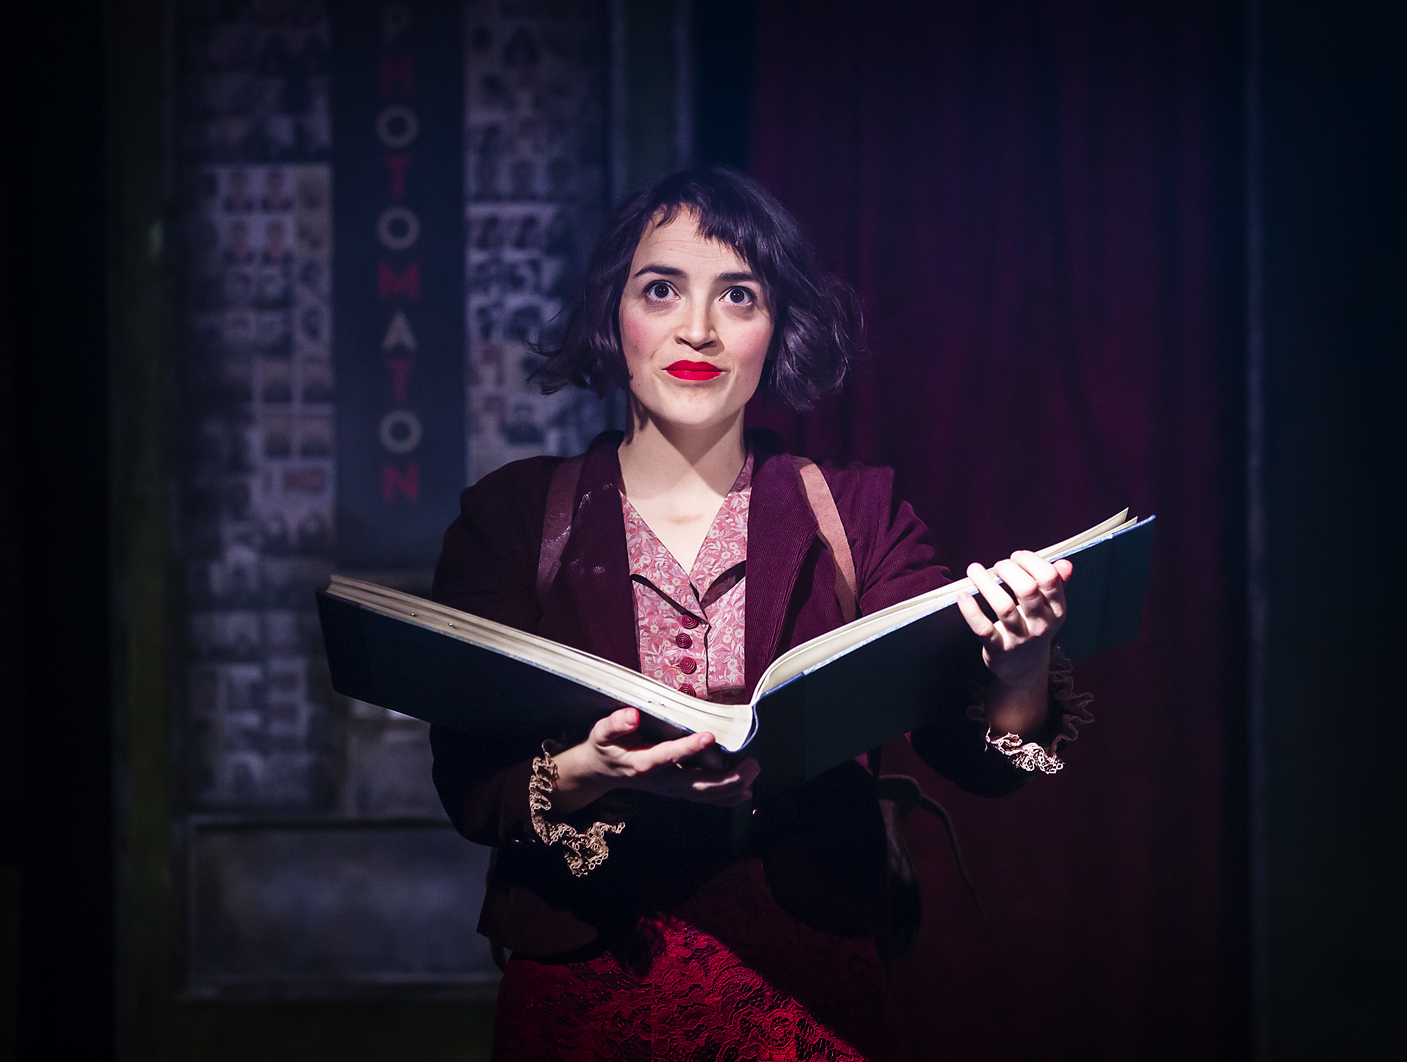 Amelie, with curly black hair and red lipstick, in red clothes, smiles as he holds and open book.